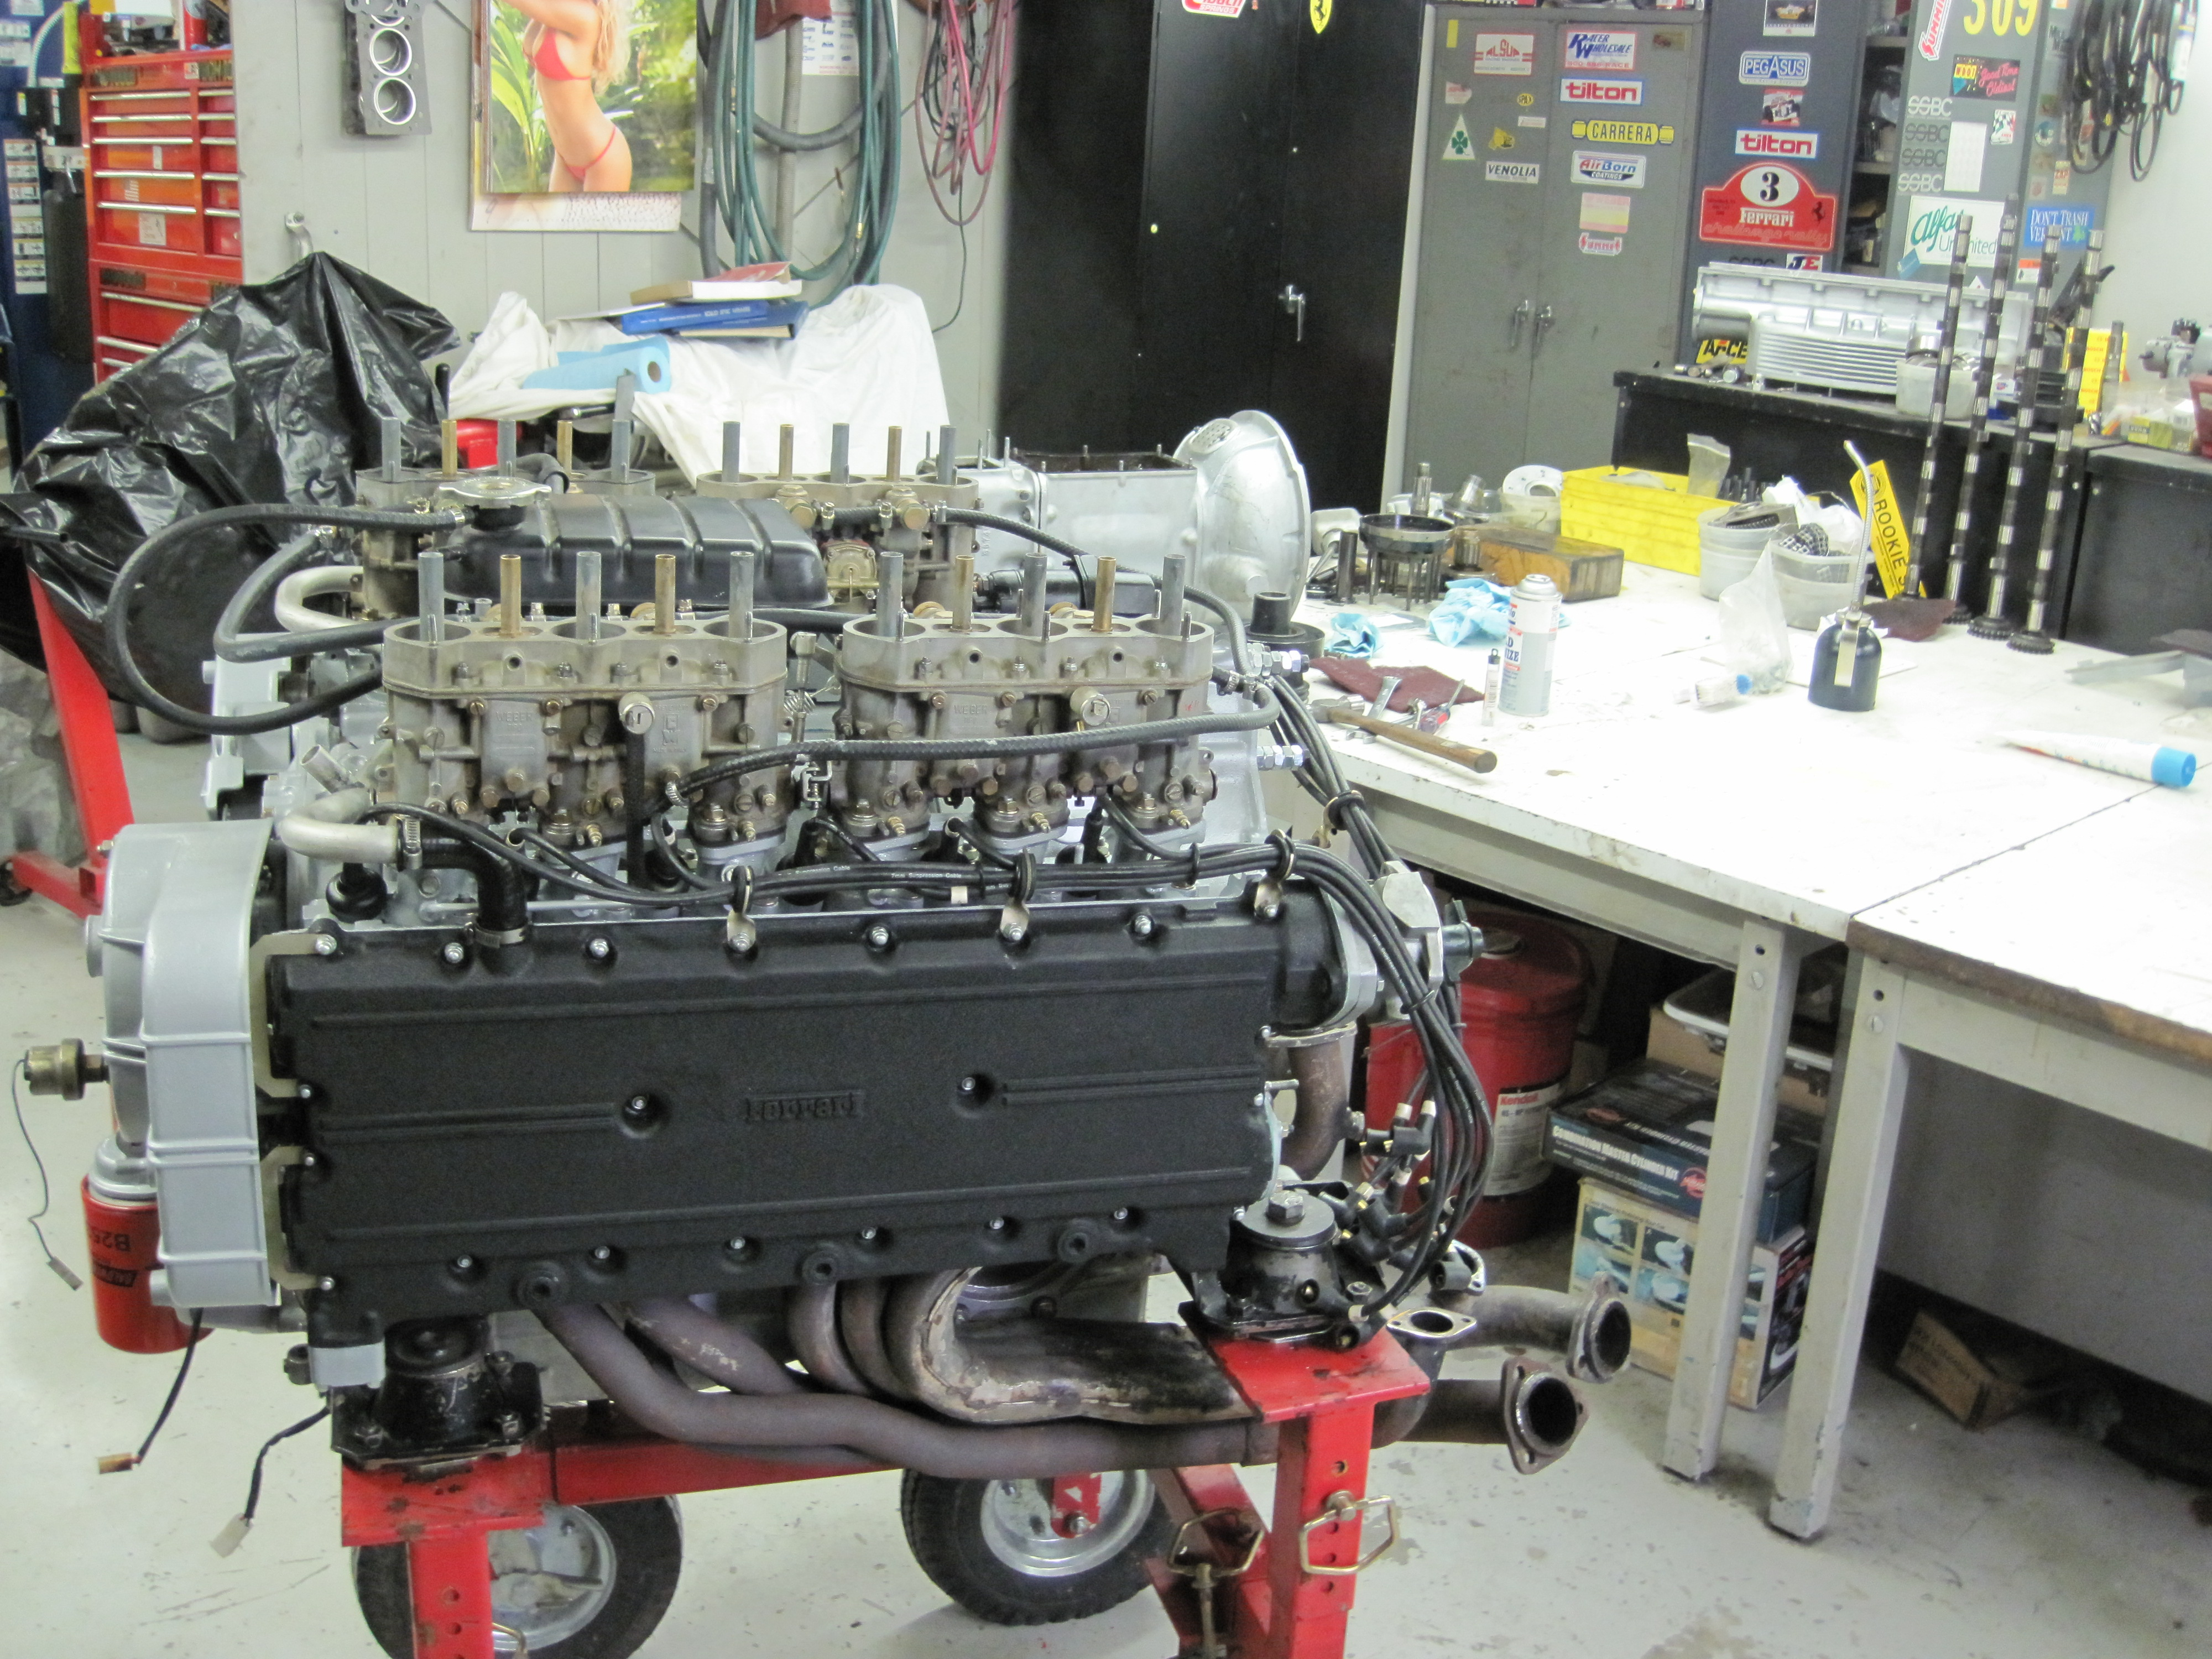 Boxer engine Almost finished